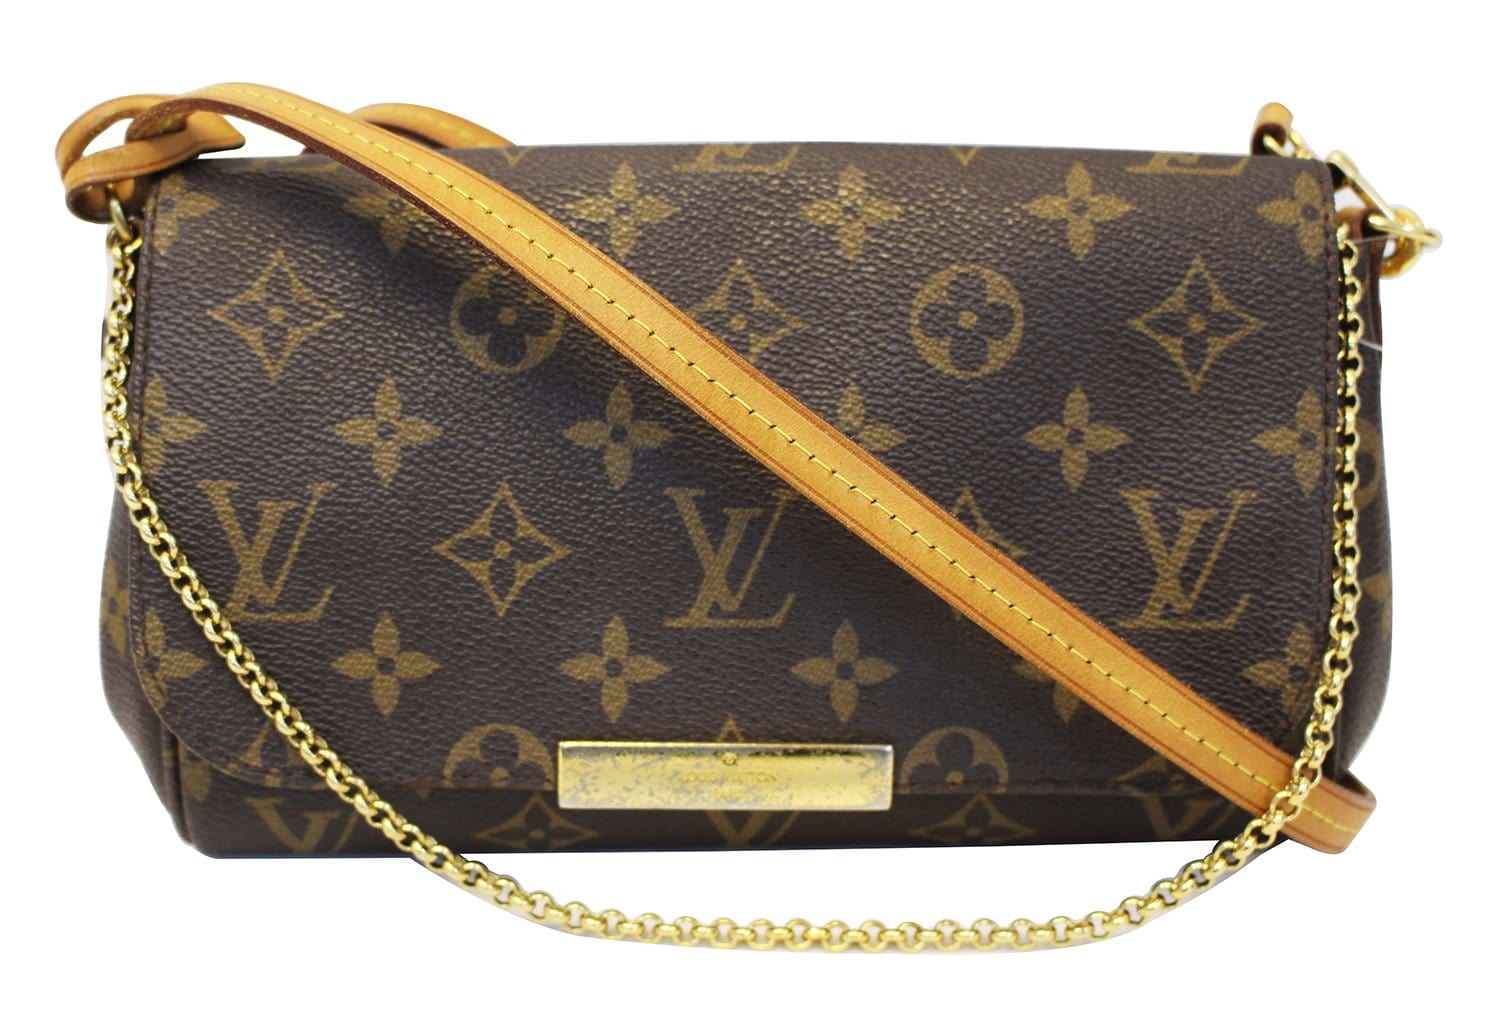 d959f91f56b1 LOUIS VUITTON Crossbody Bag Used Monogram Canvas Favorite PM